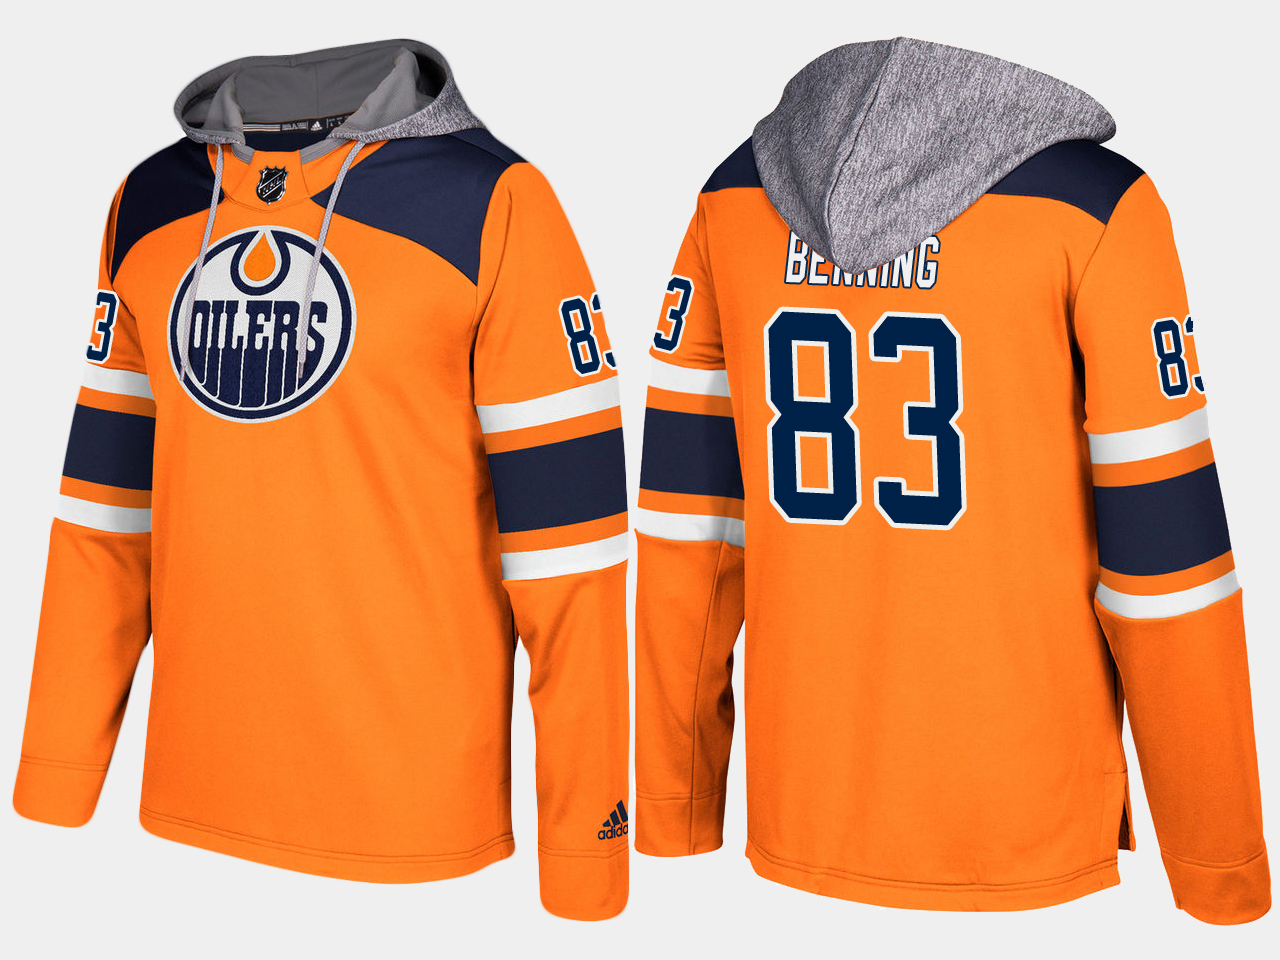 Men NHL Edmonton oilers 83 matthew benning orange hoodie